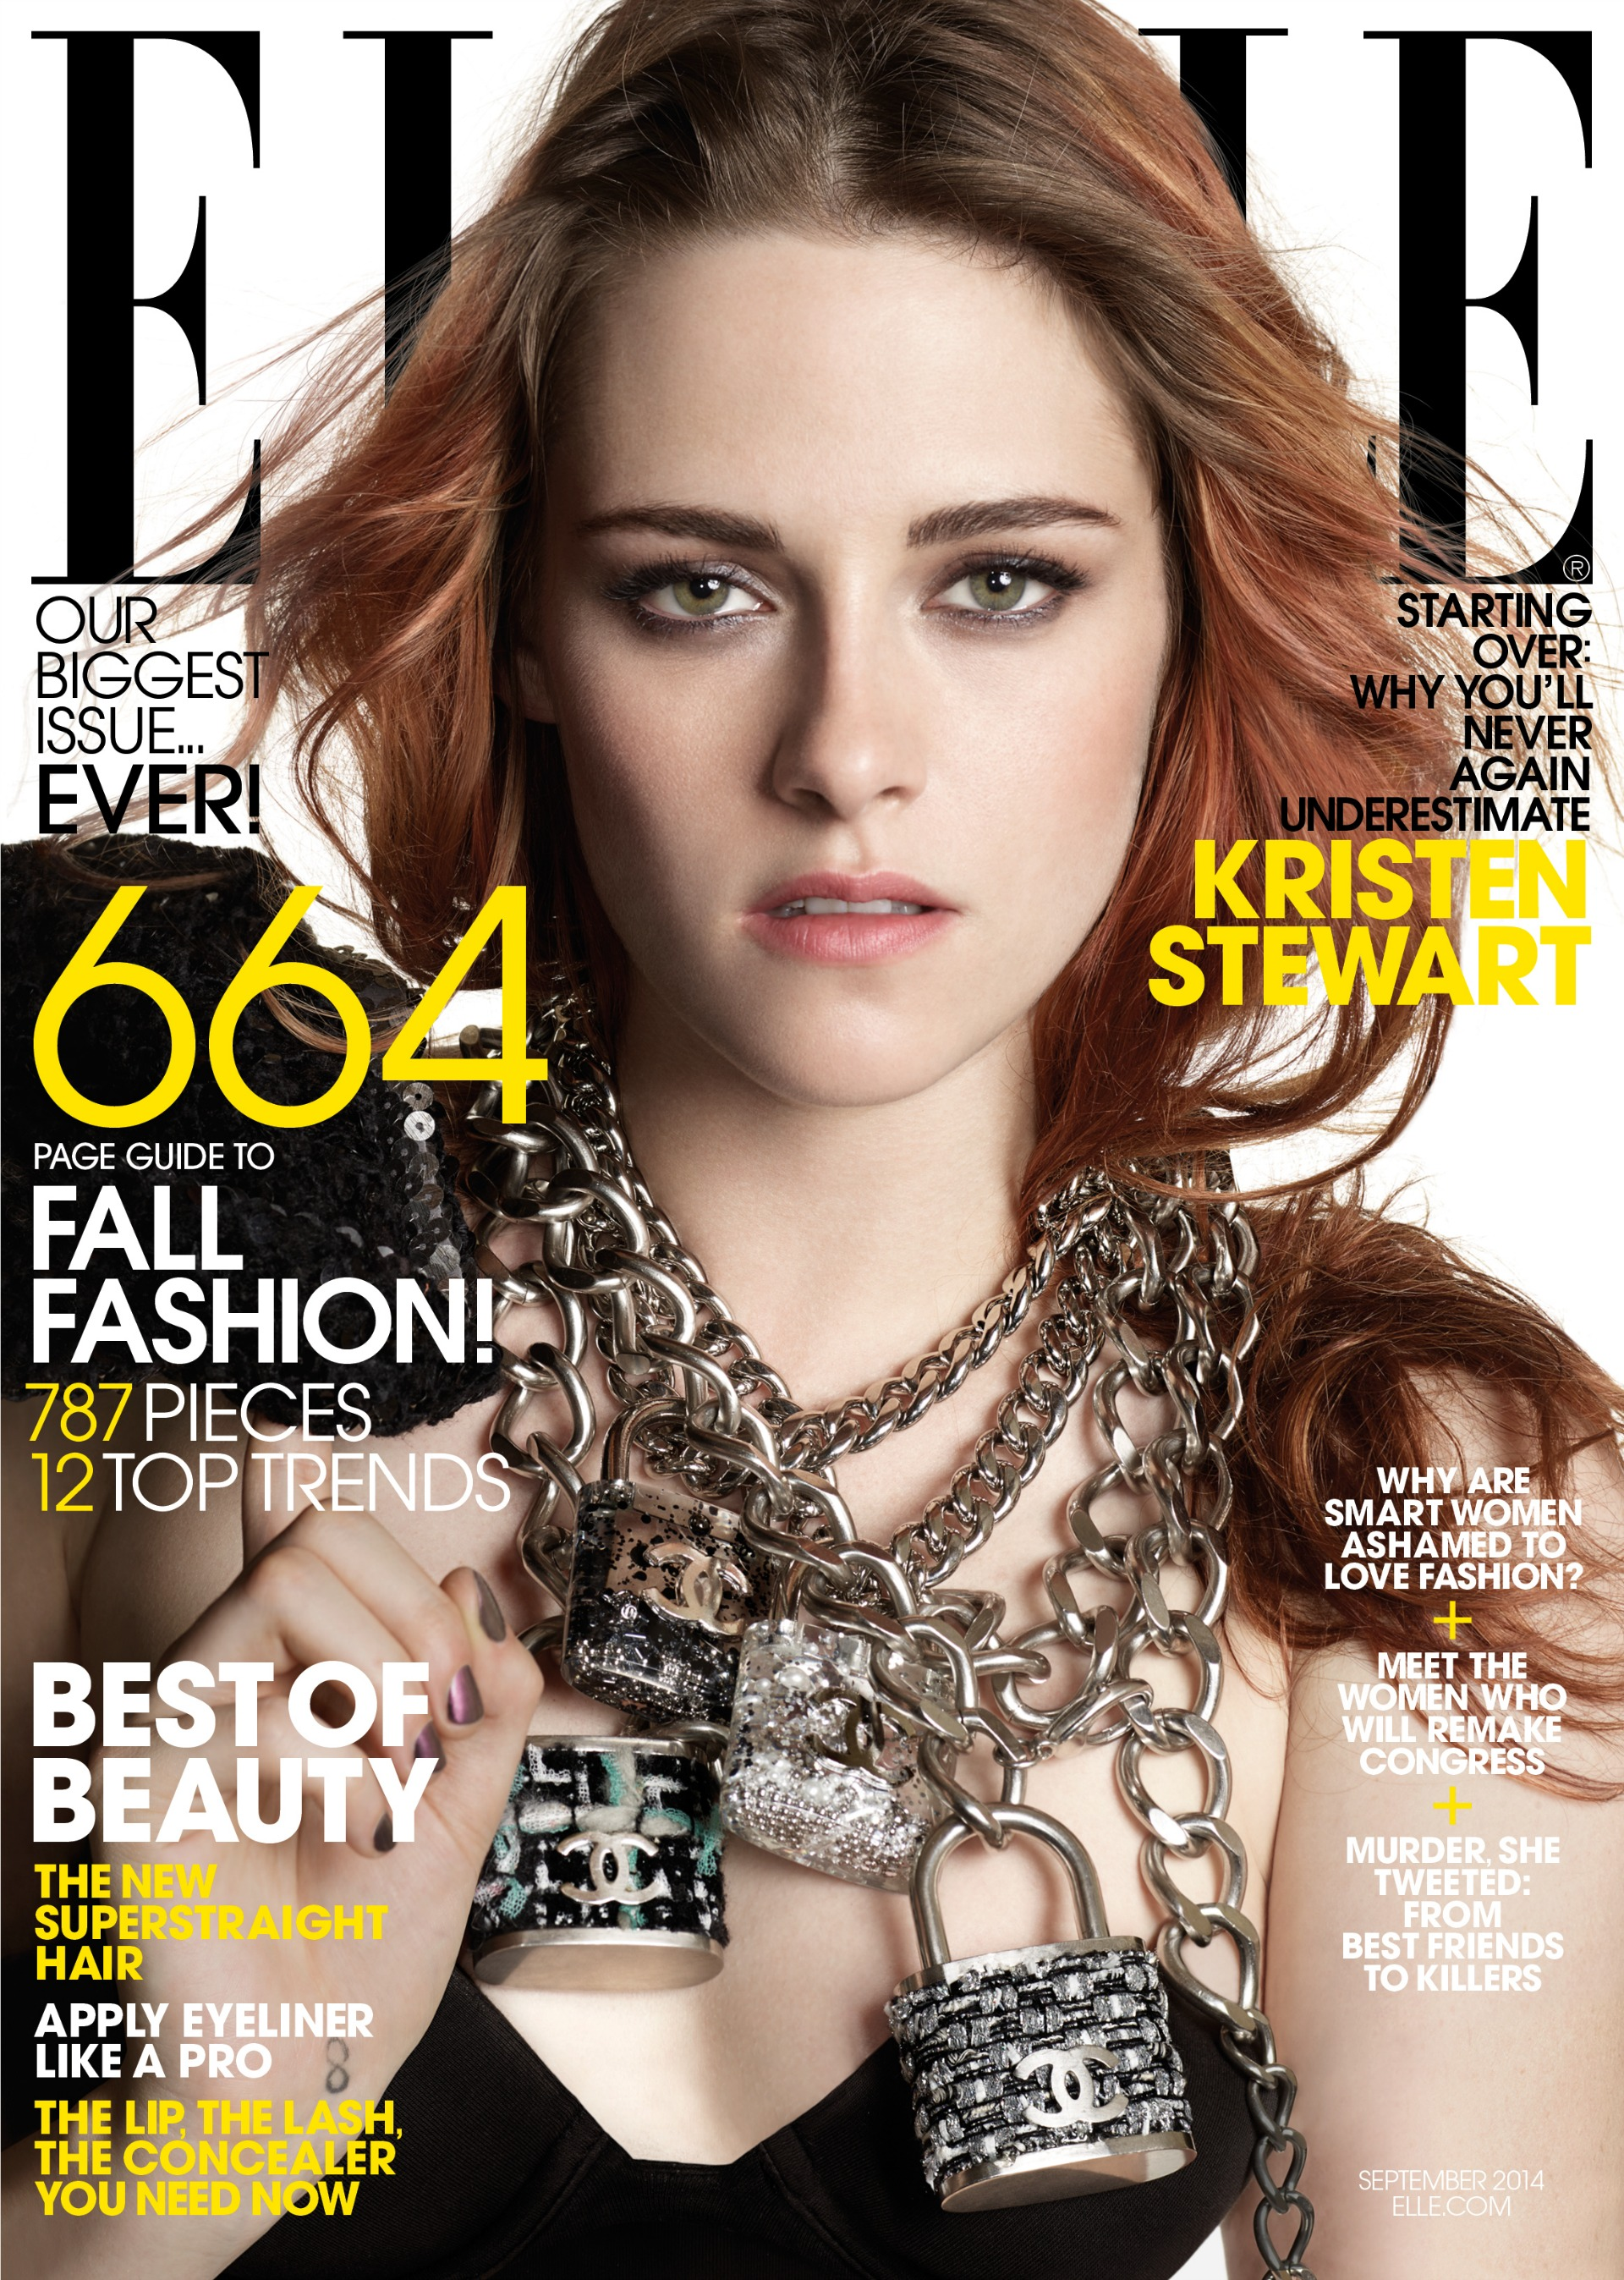 Kristen Stewart dishes on fame, the paparazzi and a bag of chips